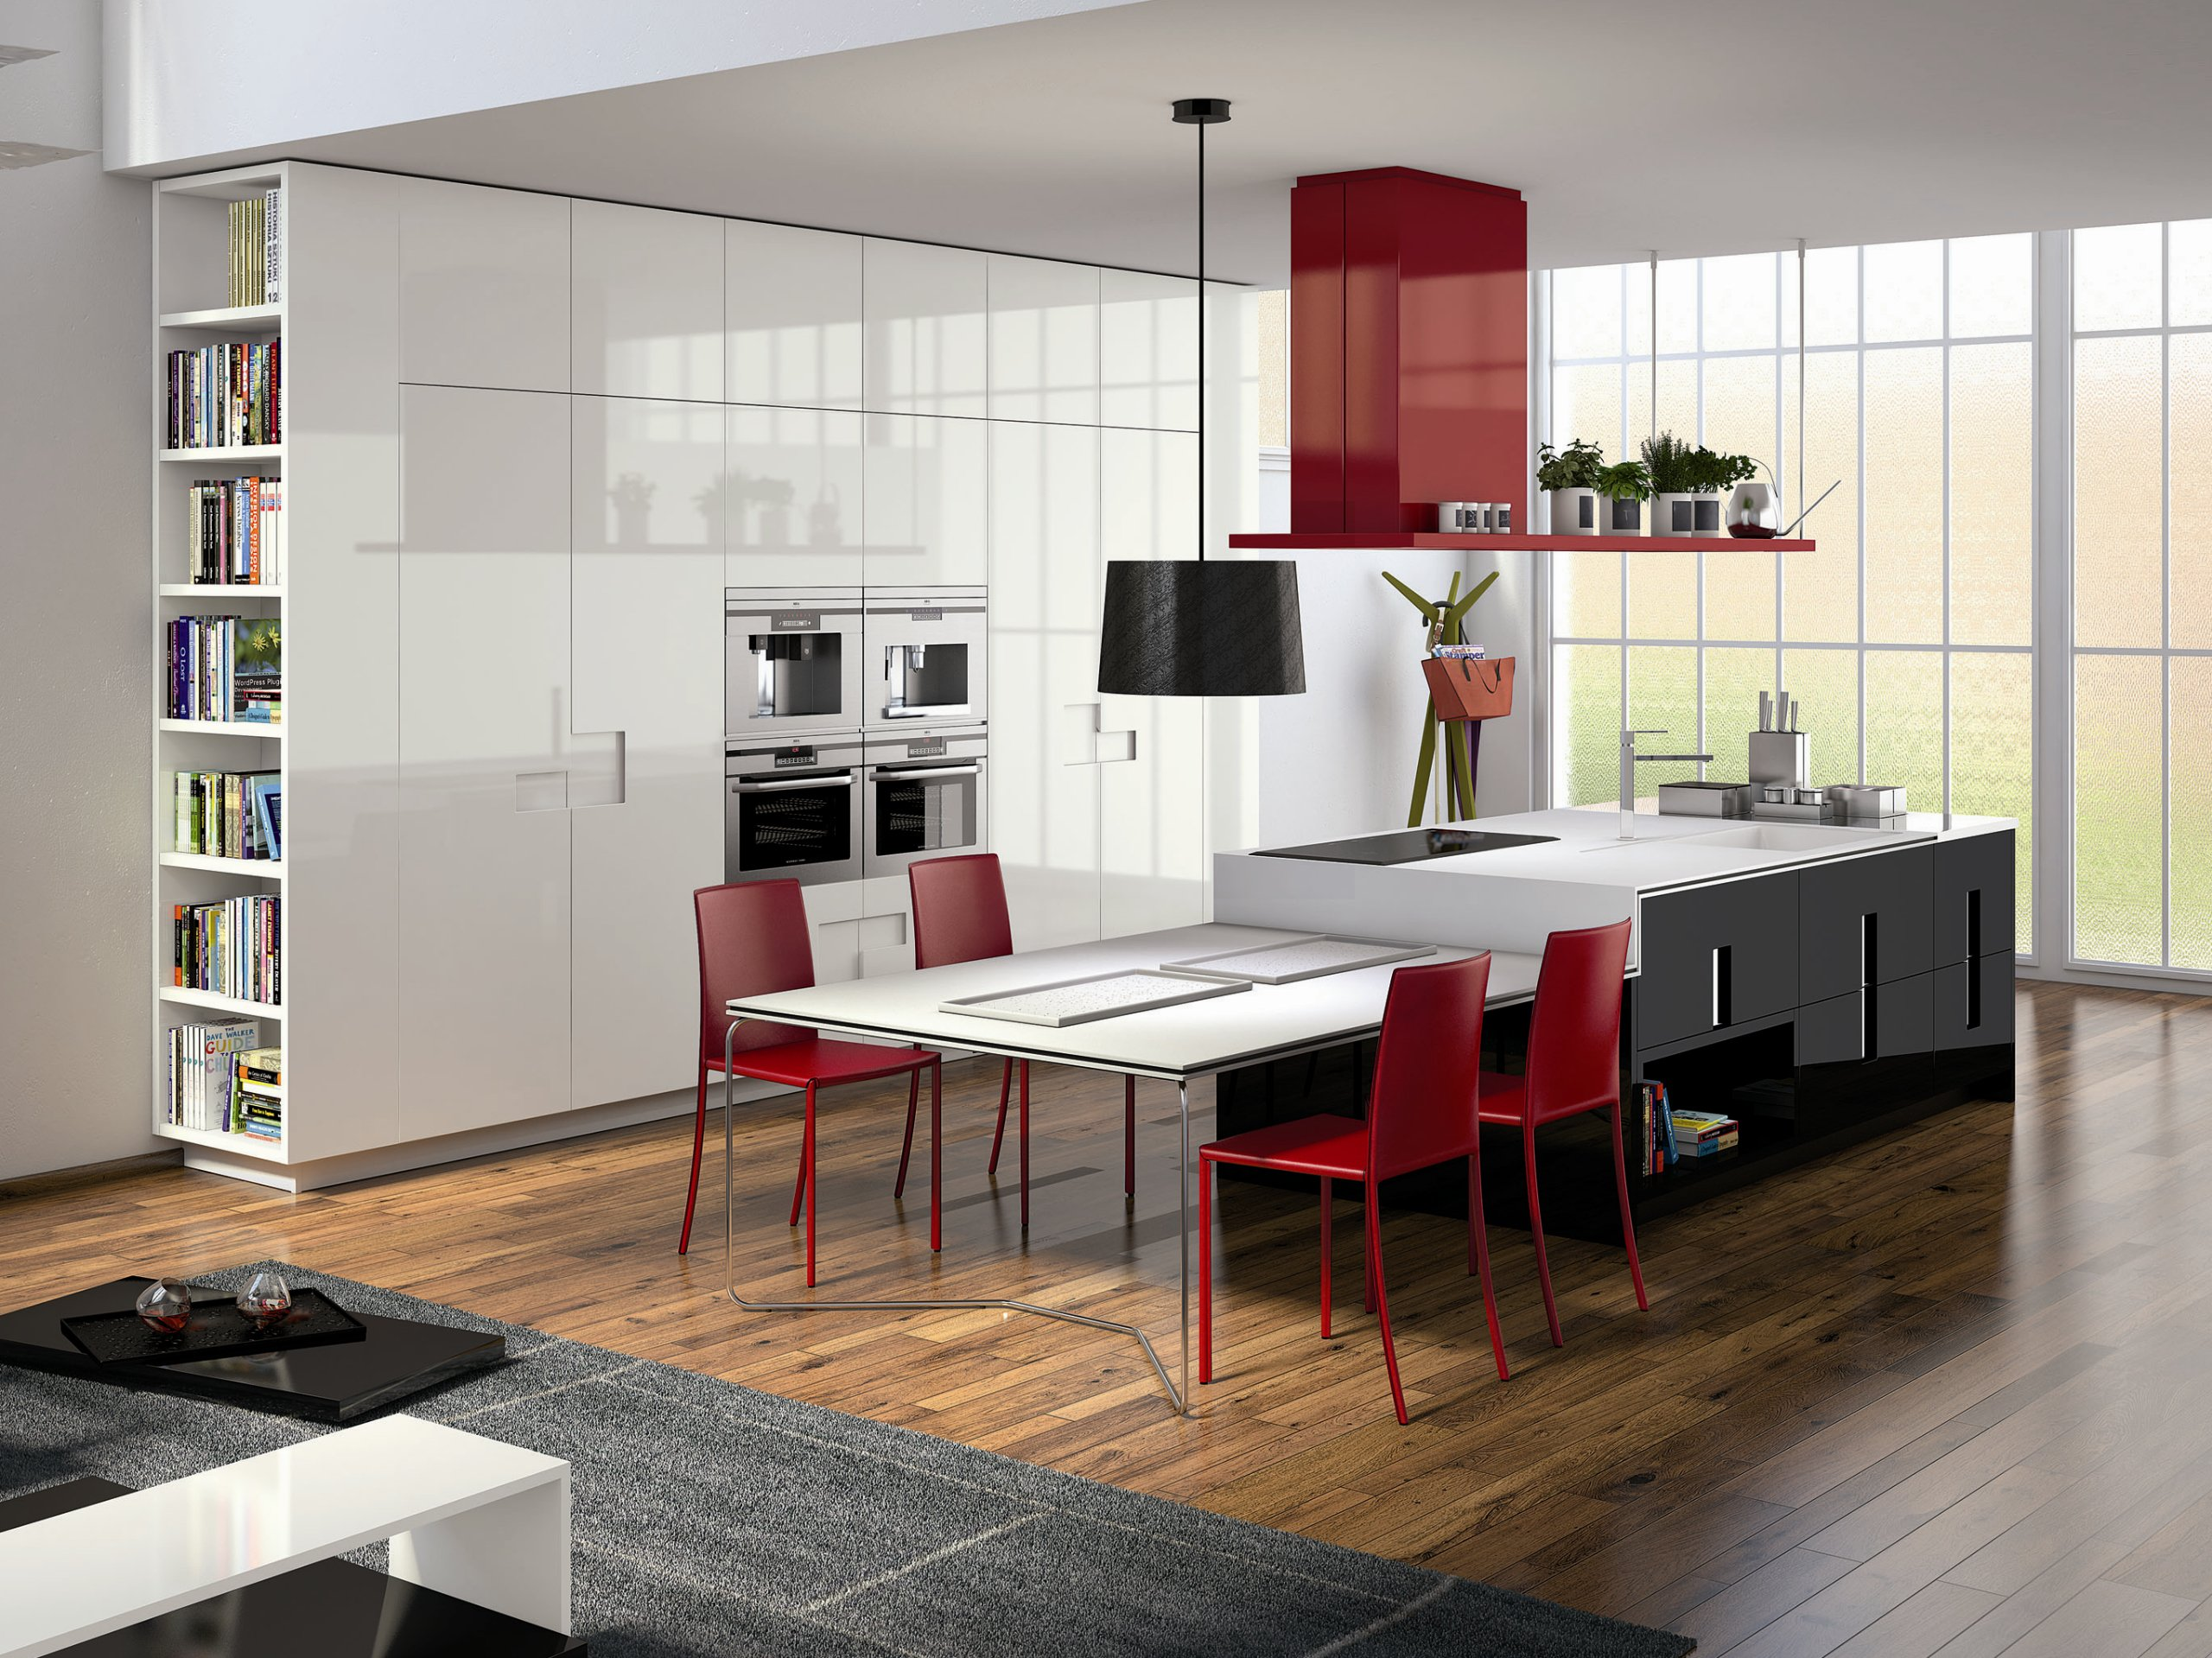 Pictures Cucina Ernestomeda In Offerta Outlet Cucine A Prezzi Scont Pictures ...